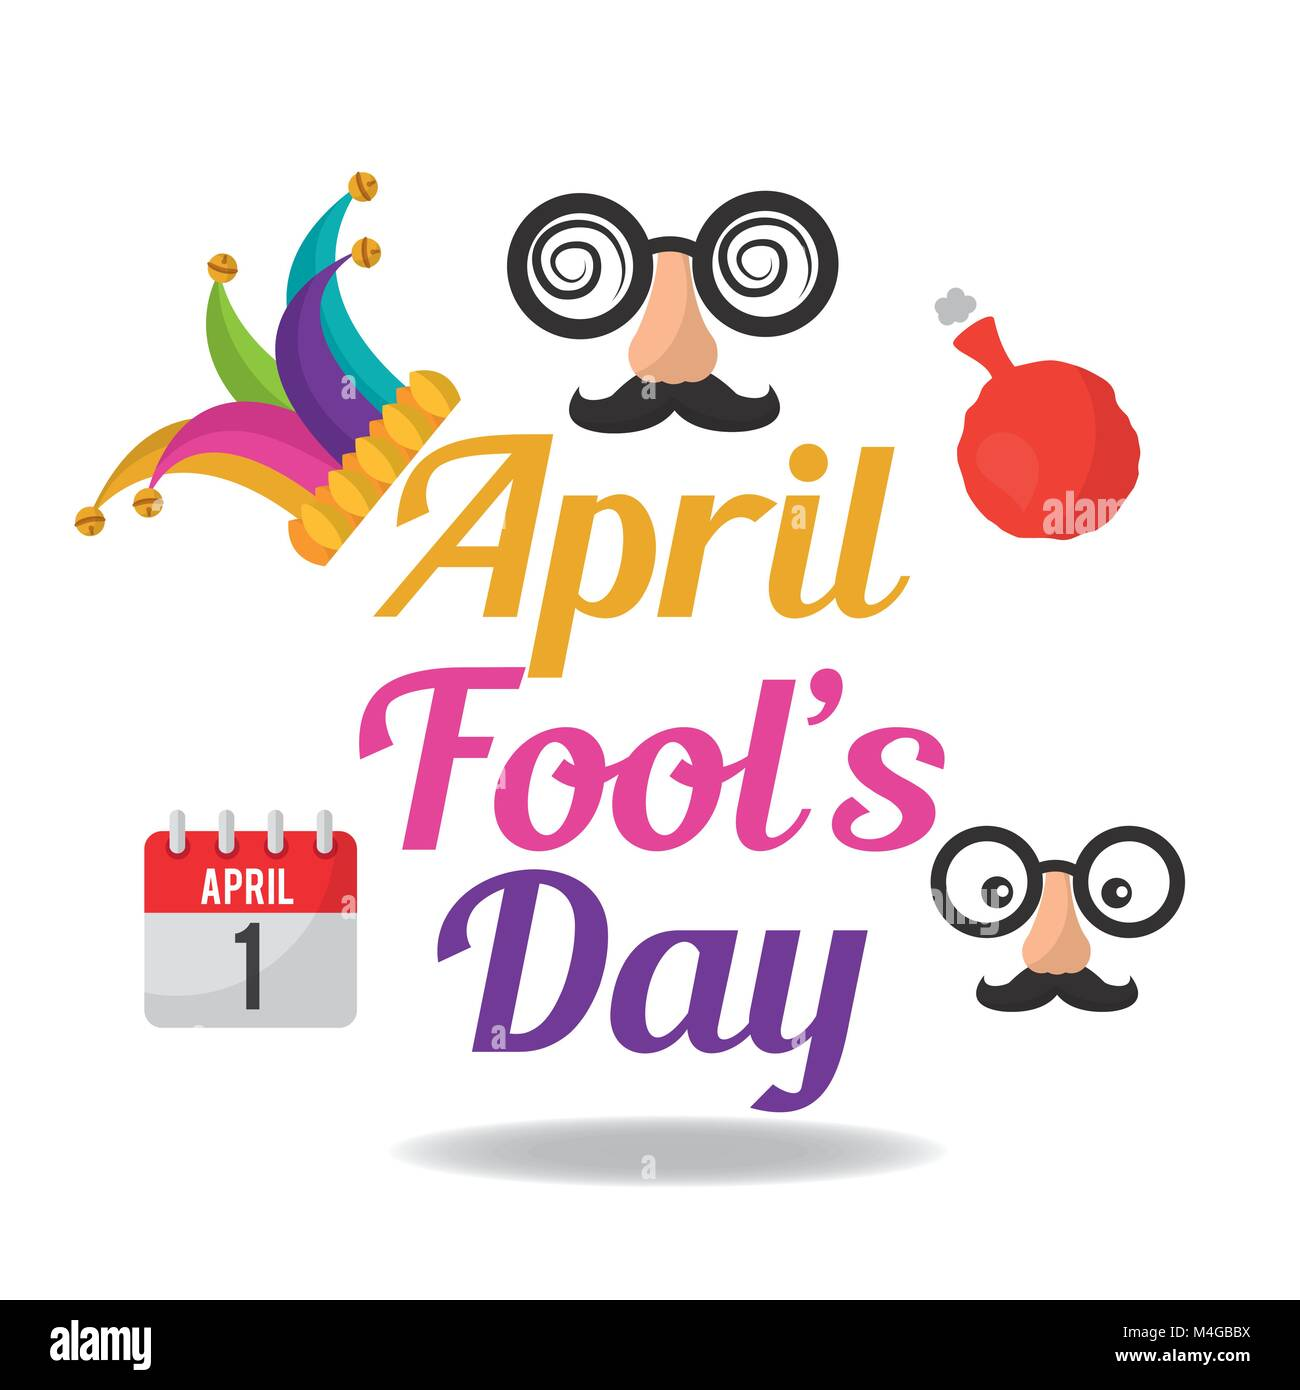 april fools day collection decoration icons Stock Vector Image & Art - Alamy